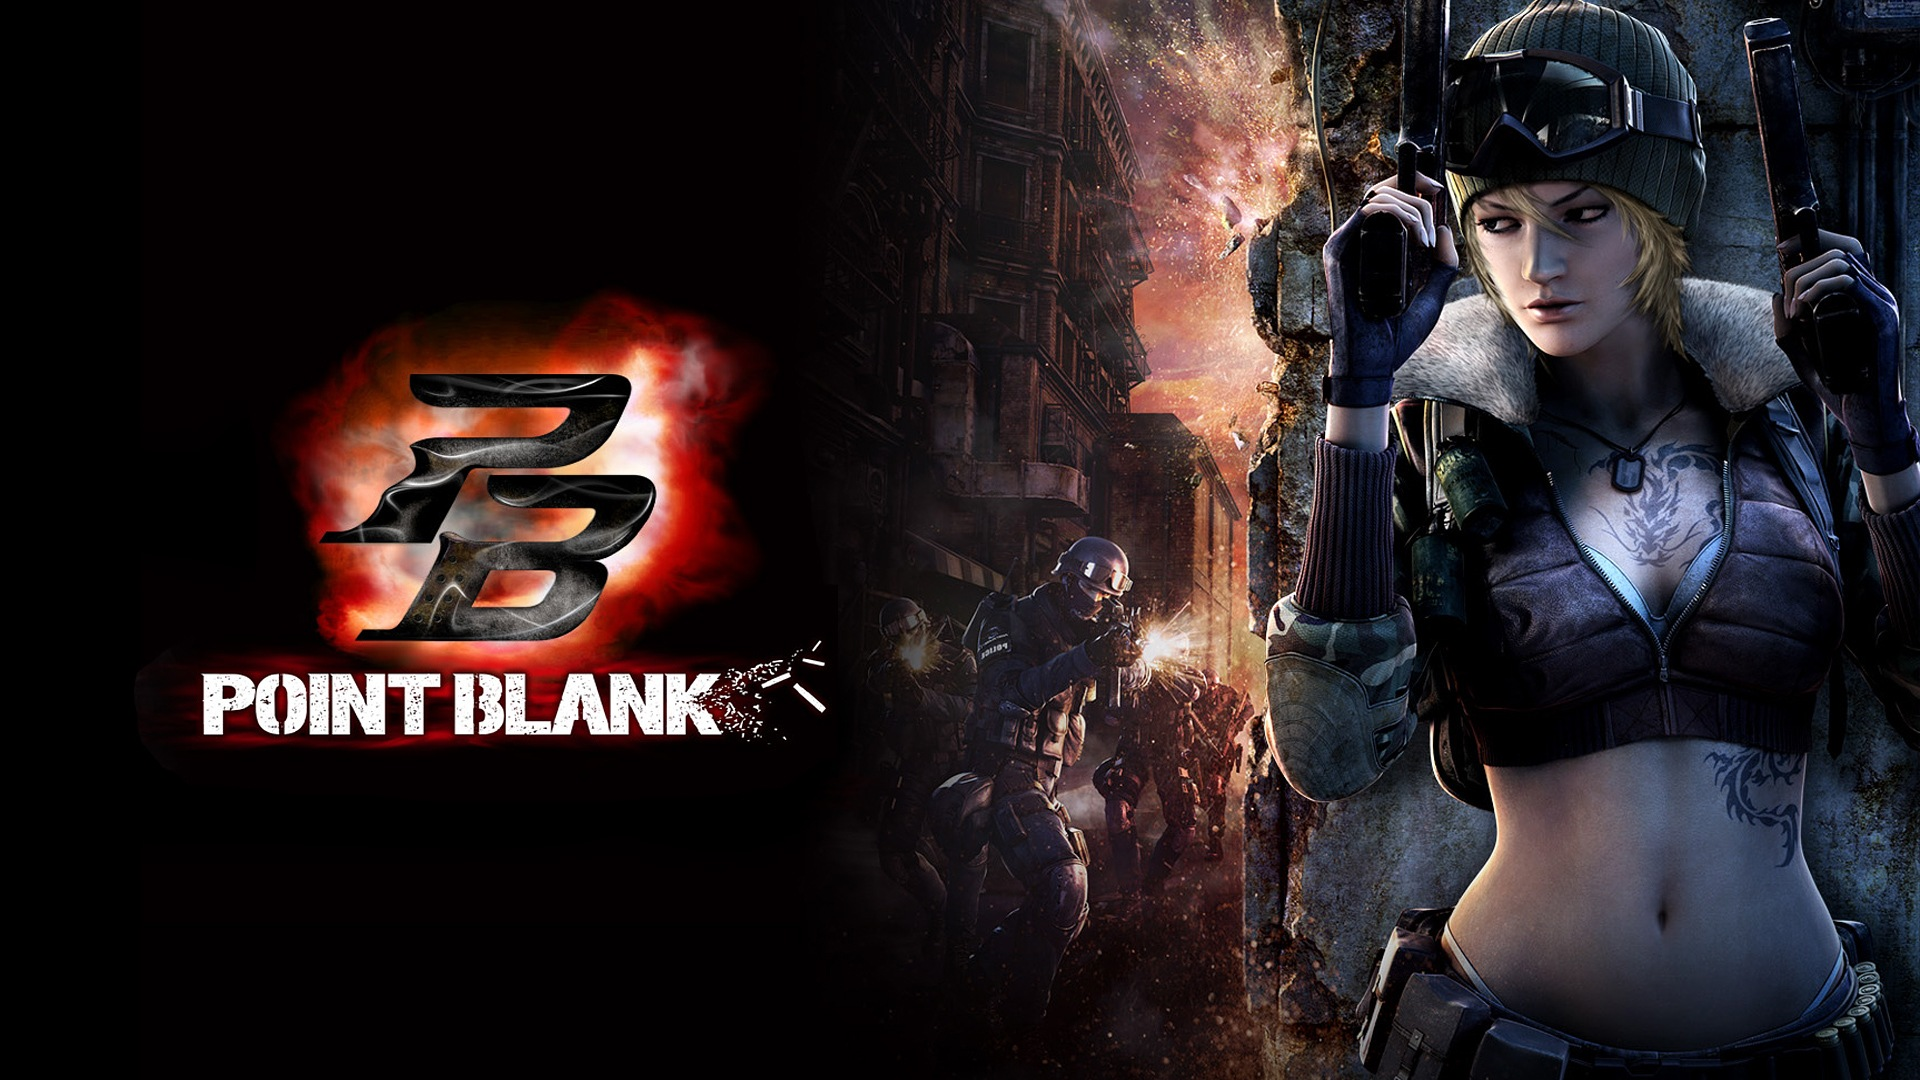 Point Blank Hd Game Wallpapers 2 1920x1080 Wallpaper Download